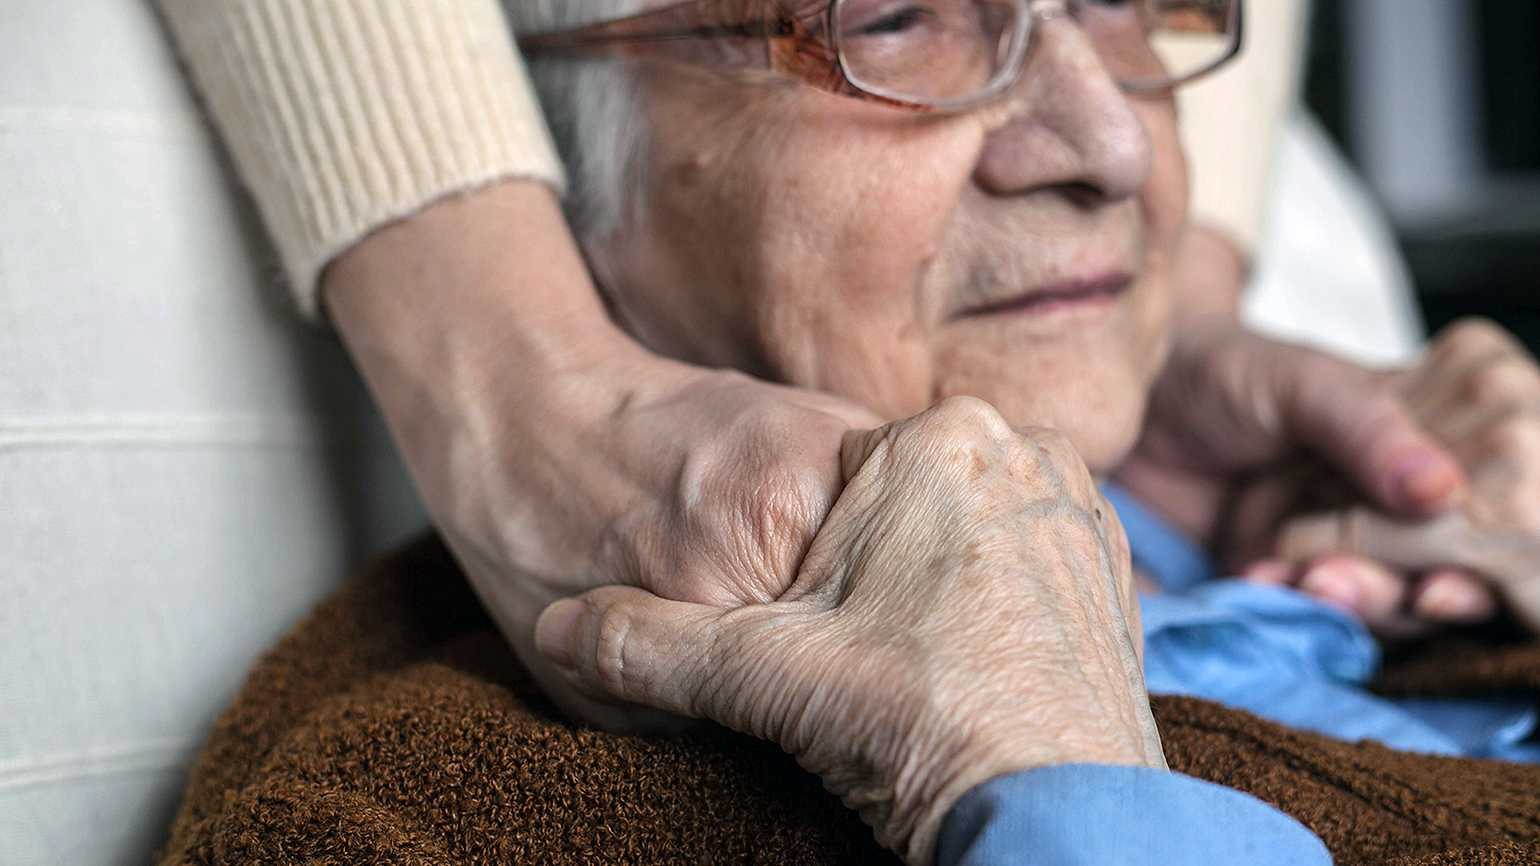 A family member clasps hands with loved one with dementia